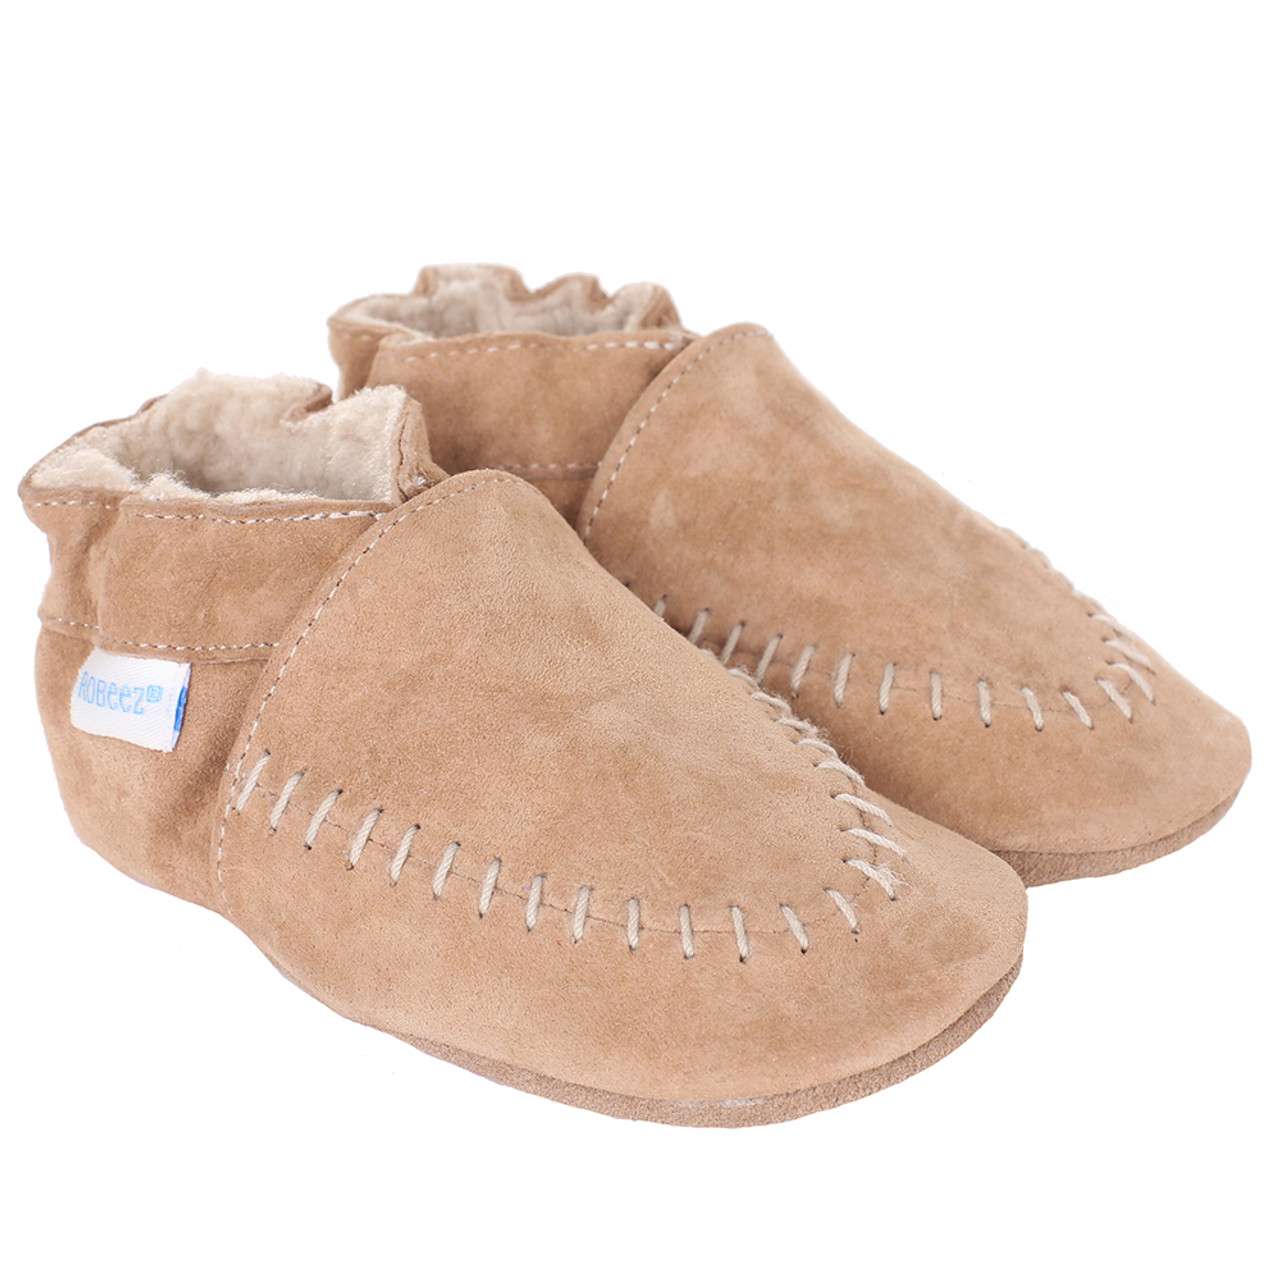 242472fd6 Robeez Cozy Moccasin Soft Soles